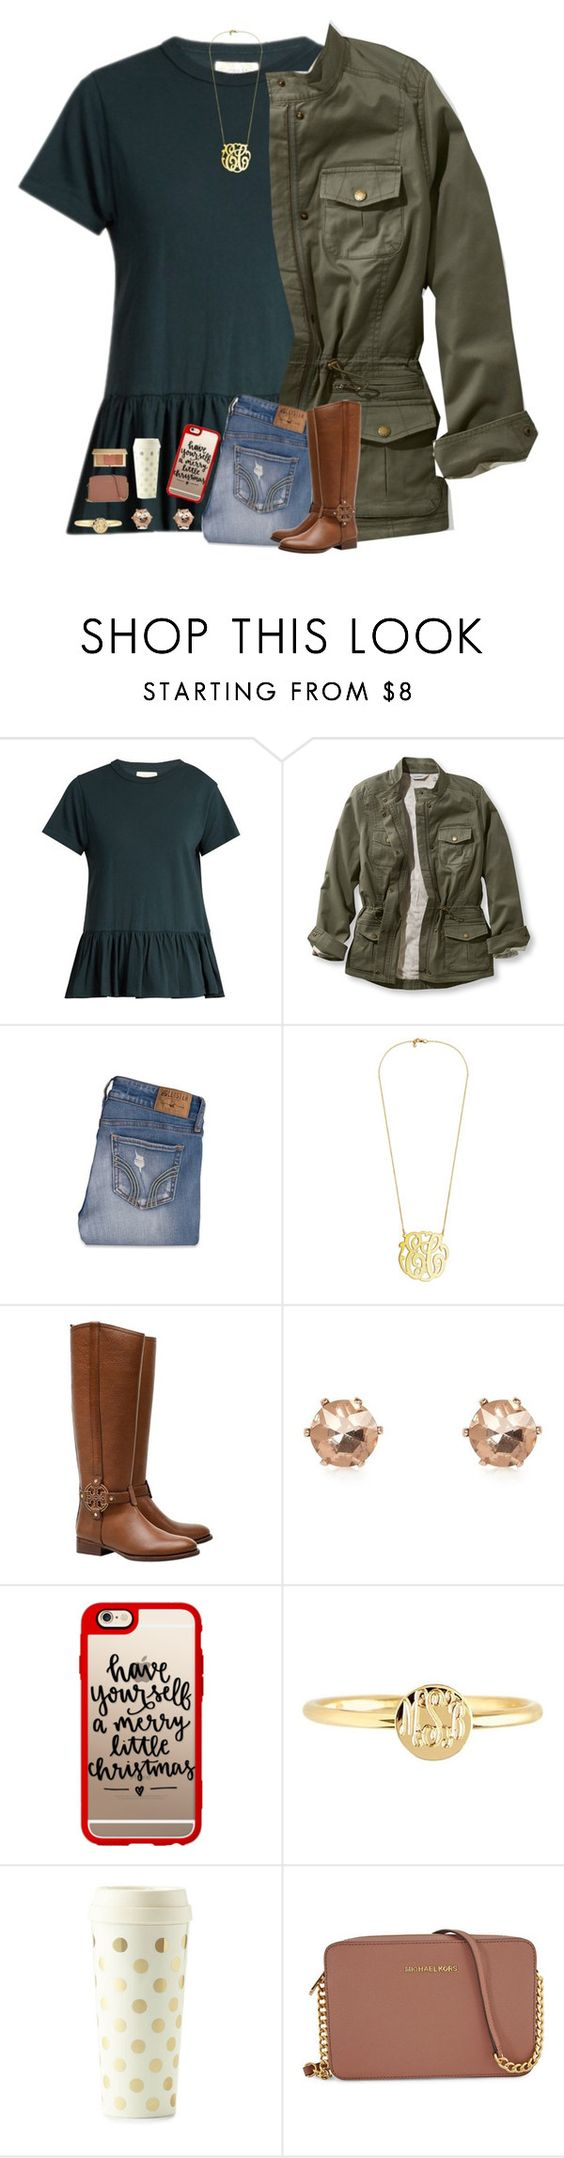 """ITS ALMOST CHRISTMAS HXMSNXJSNAKXJDJ"" by morganmestan ❤ liked on Polyvore featuring The Great, L.L.Bean, Hollister Co., Tory Burch, River Island, Casetify, Mark & Graham, Kate Spade, Michael Kors and Estée Lauder"